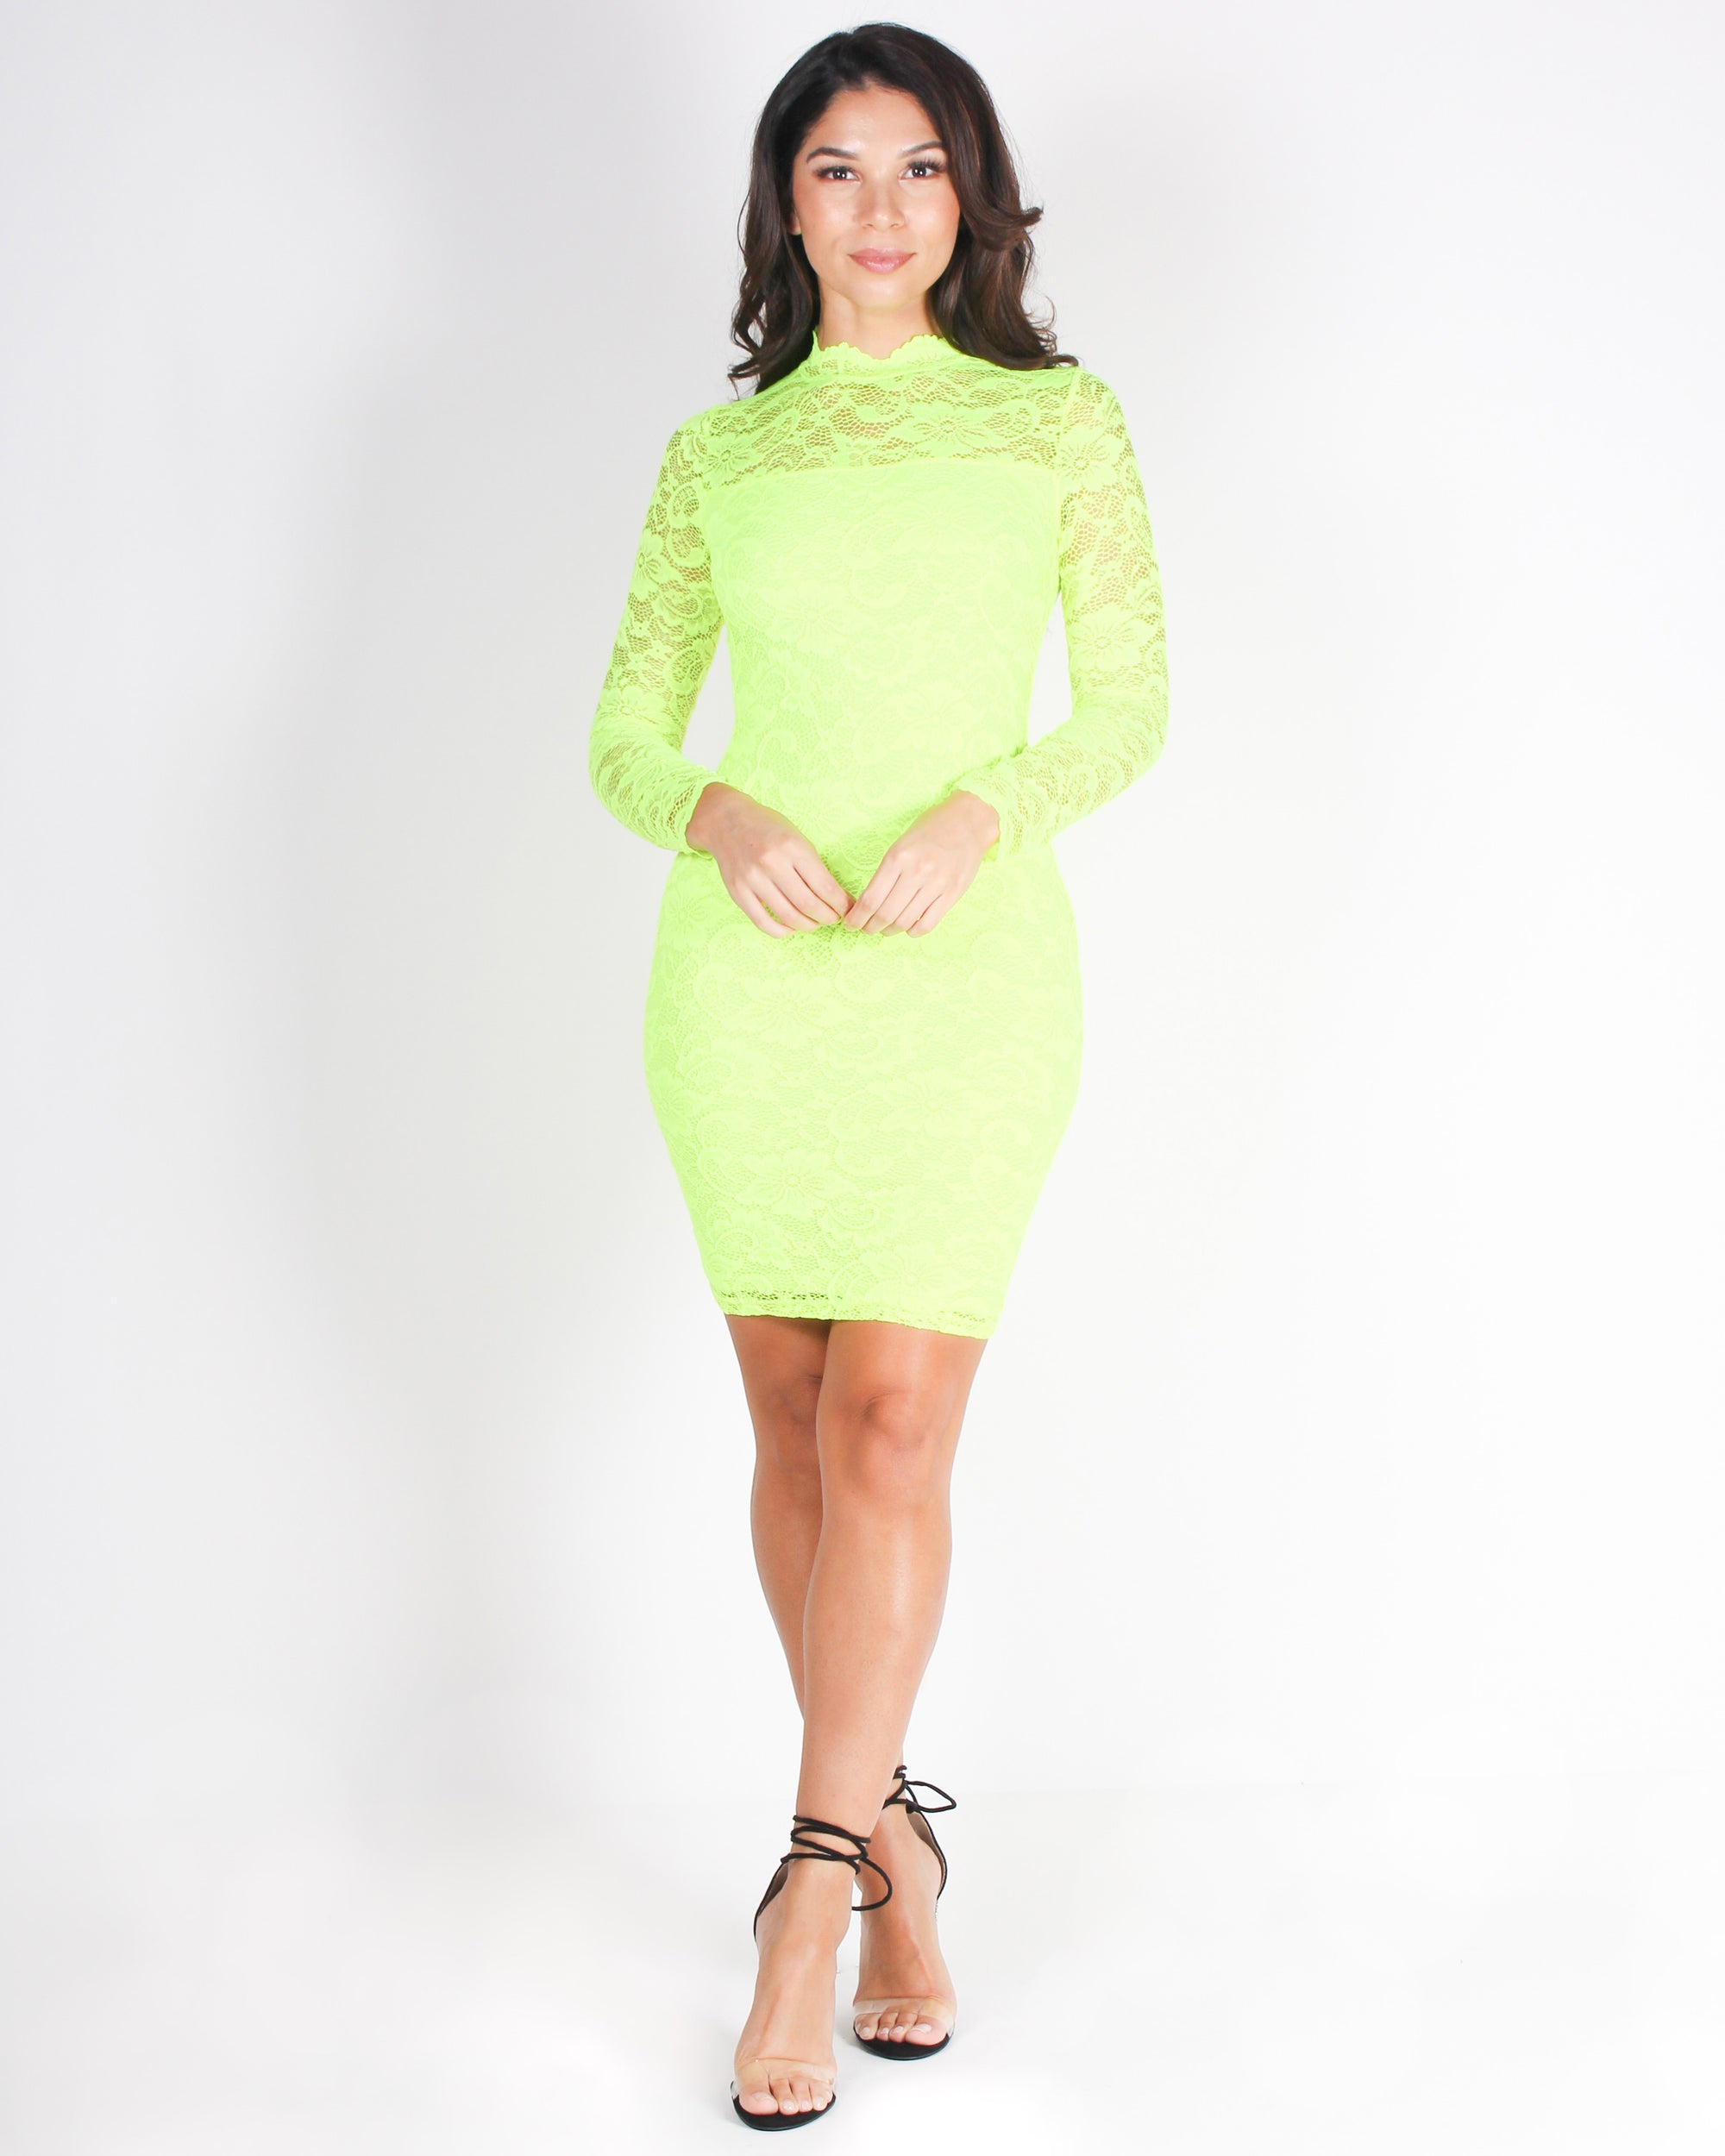 Shop Q Fashion Q Hats Off to a Lacing Good Time Bodycon Dress Neon Lime LD36066L